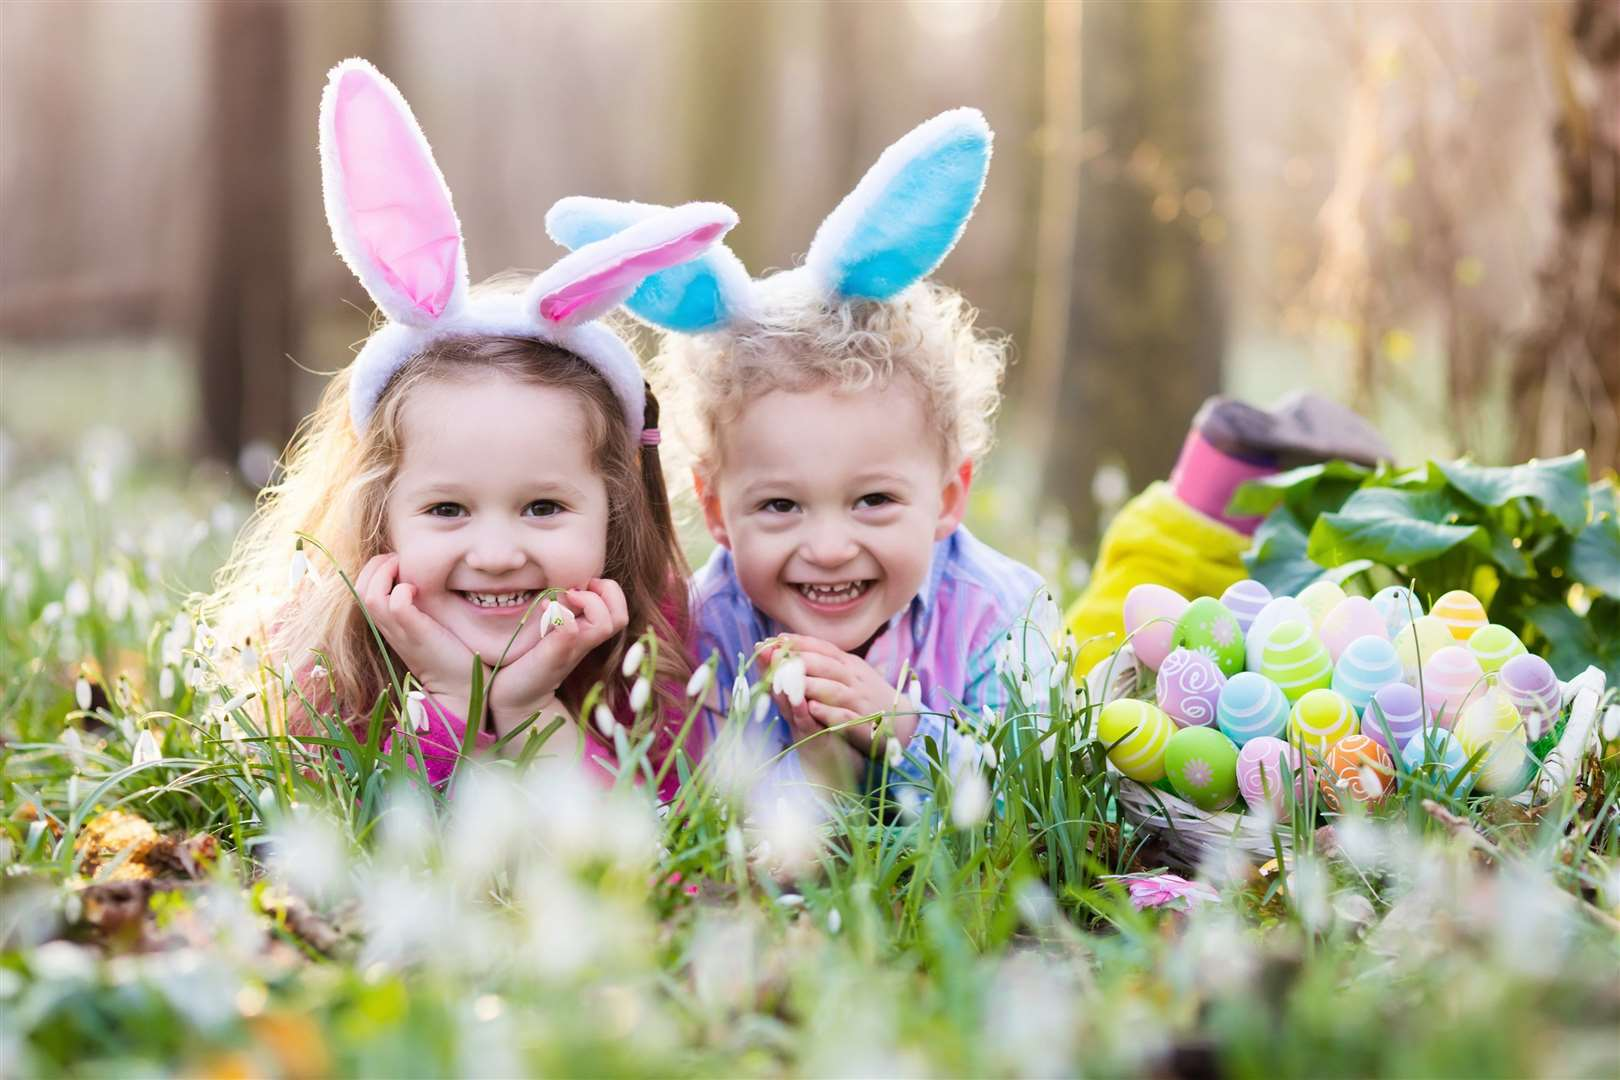 There are lots of Easter egg hunts and trails happening across Kent